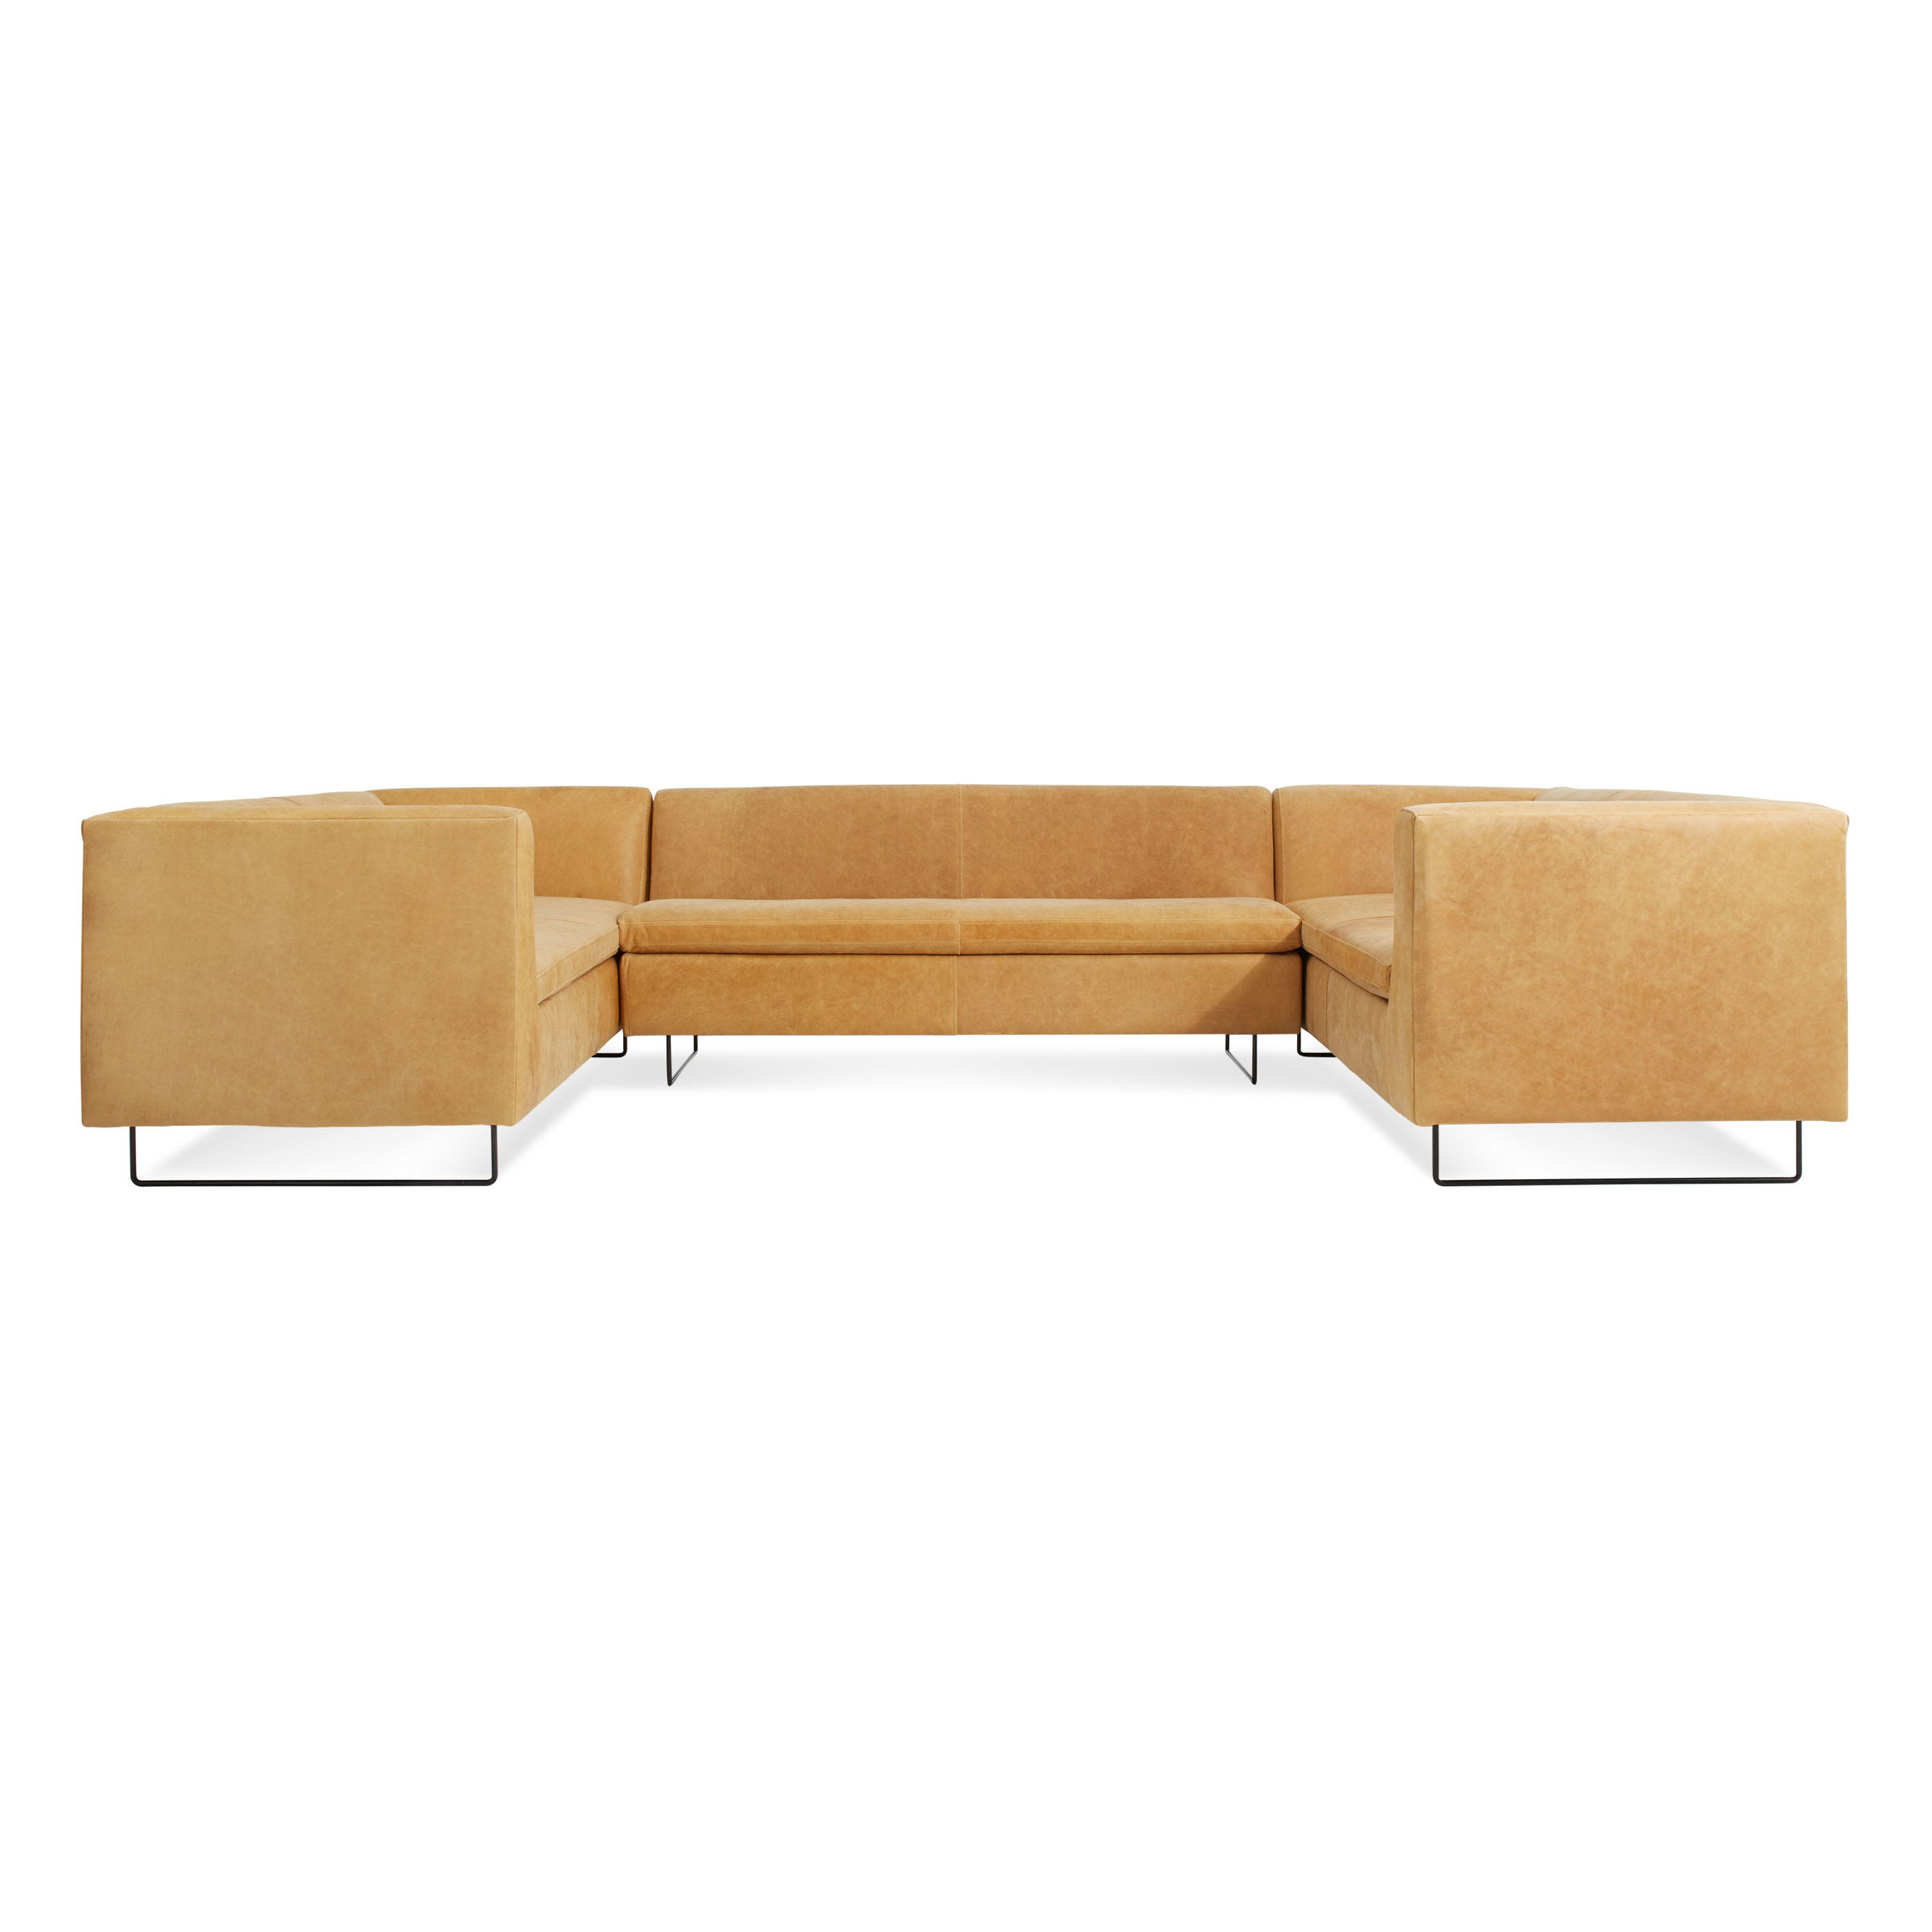 Bonnie & Clyde U Shaped Leather Sectional Sofa